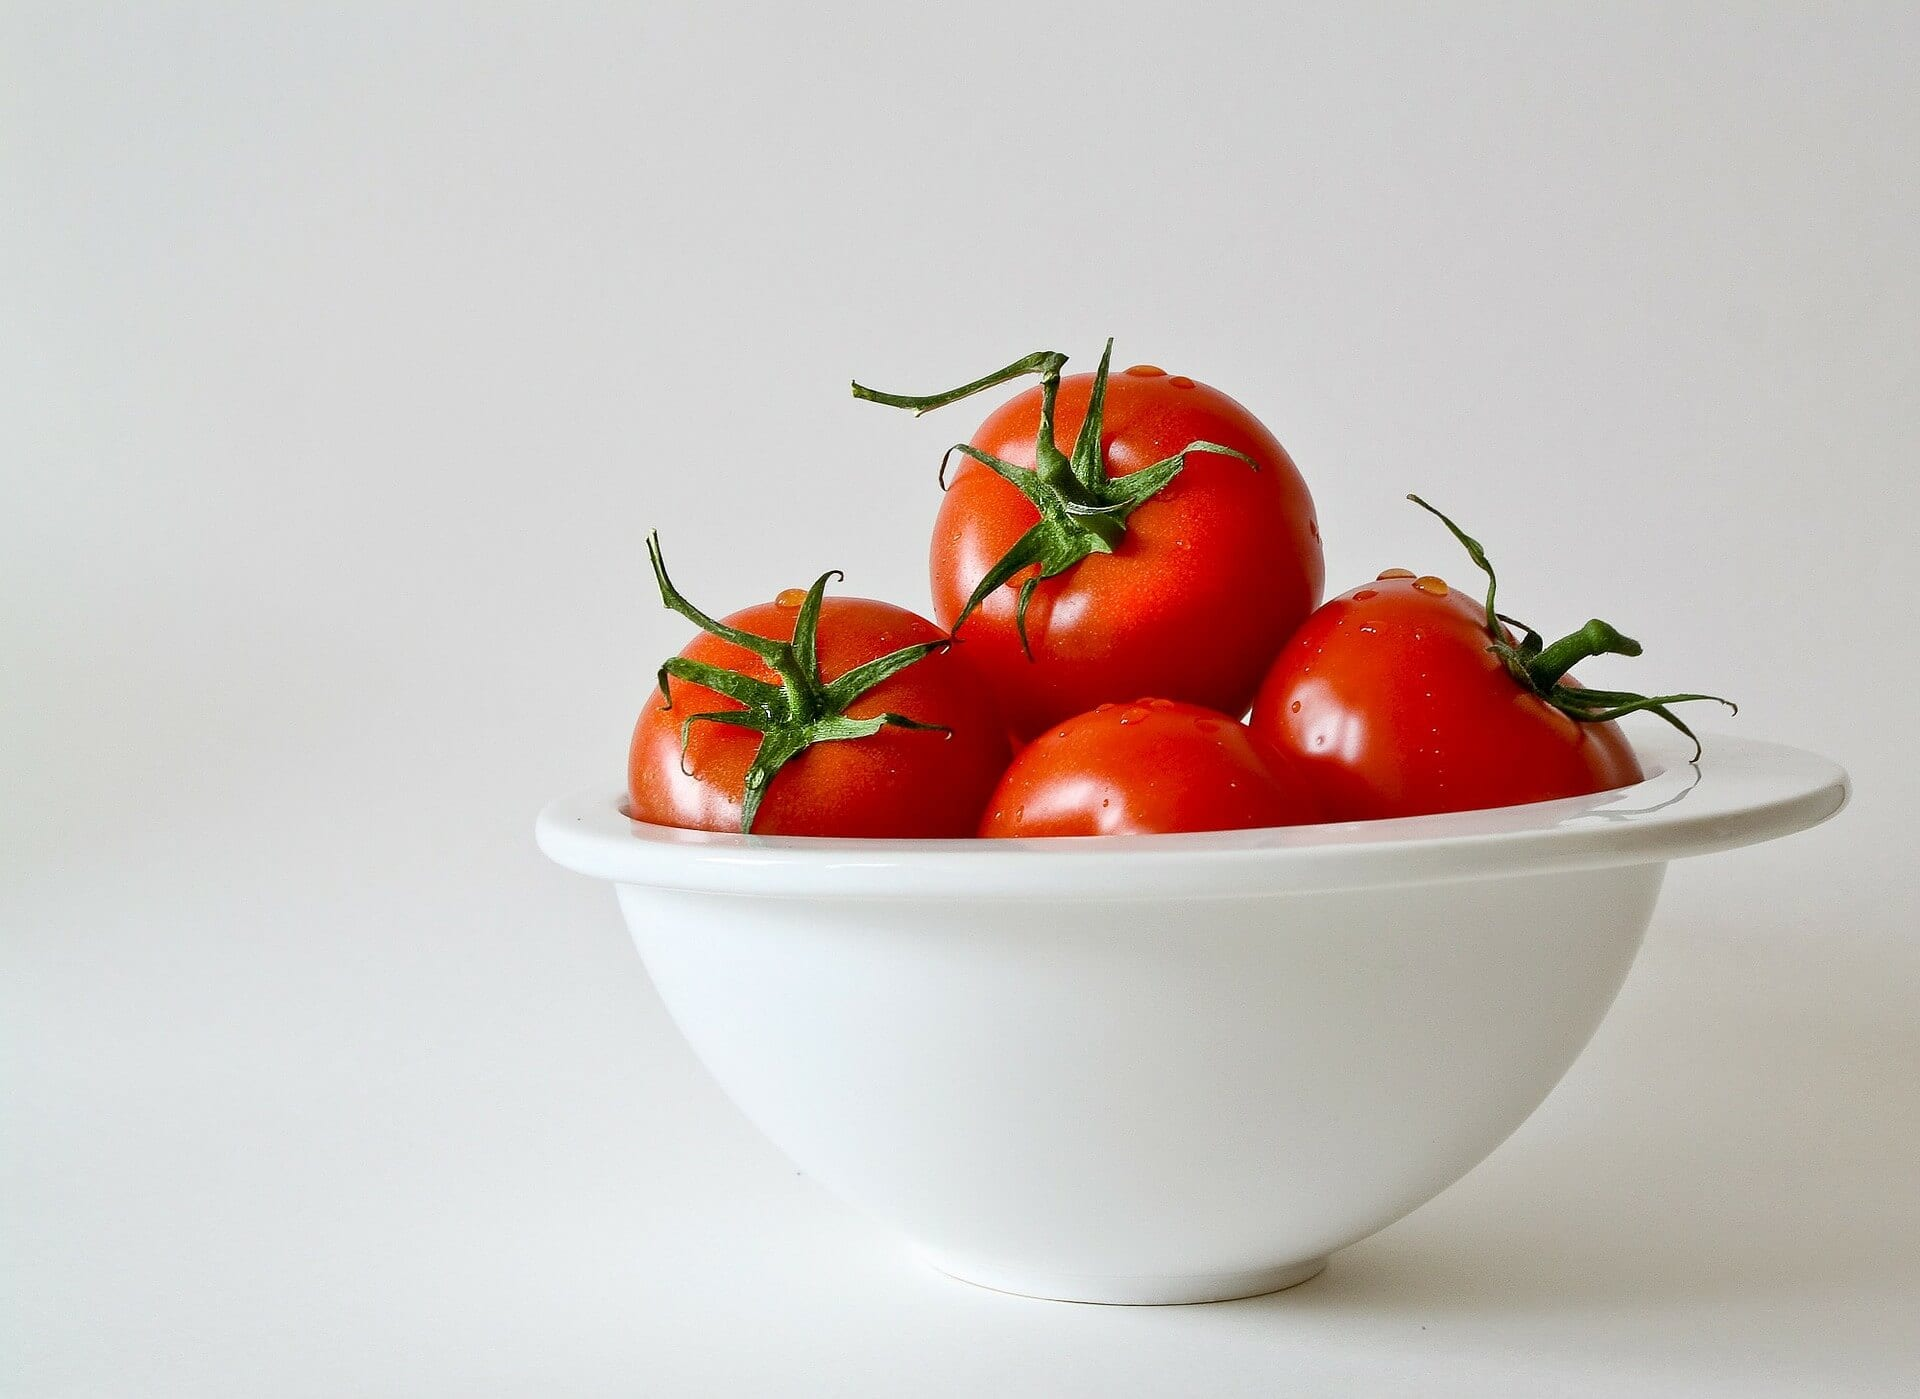 plate full of tomatoes